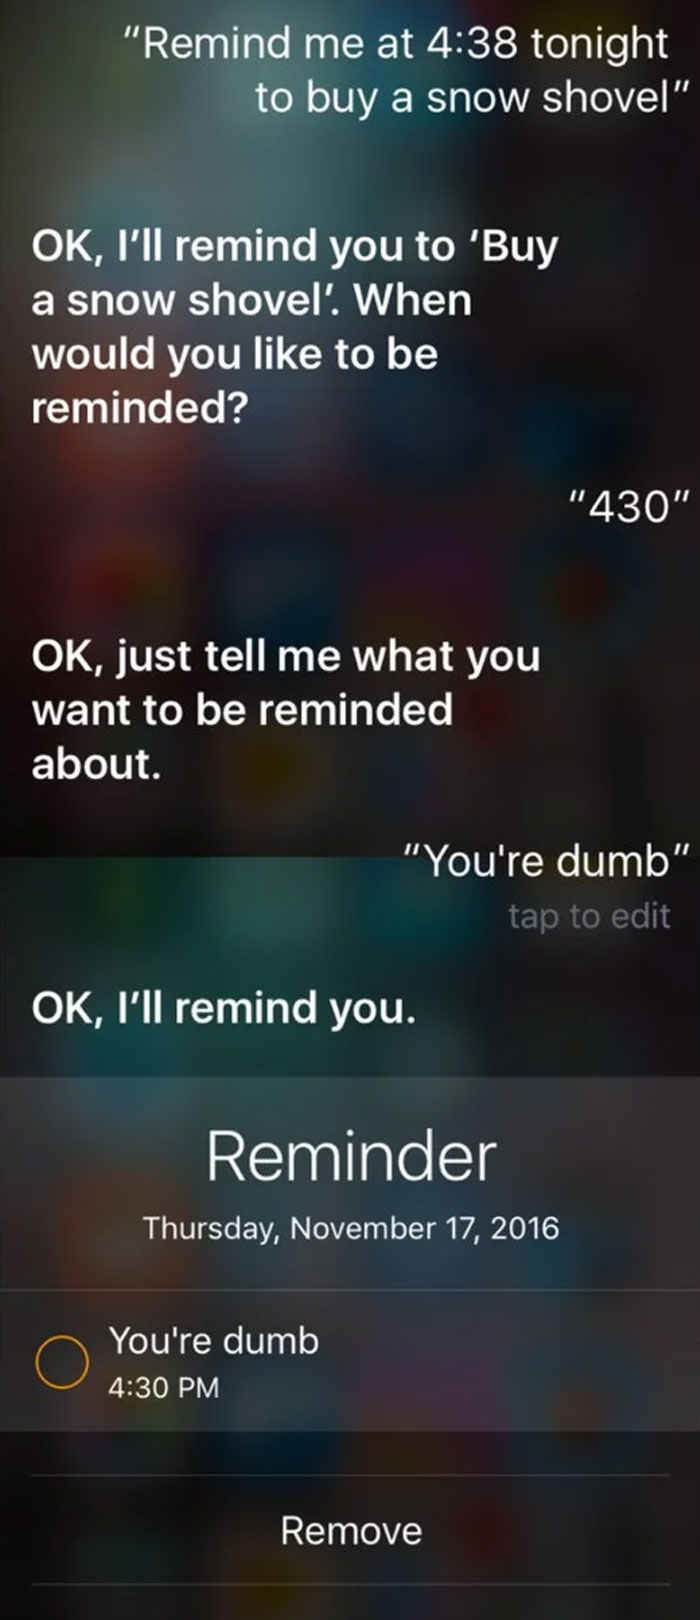 A Conversation With Siri